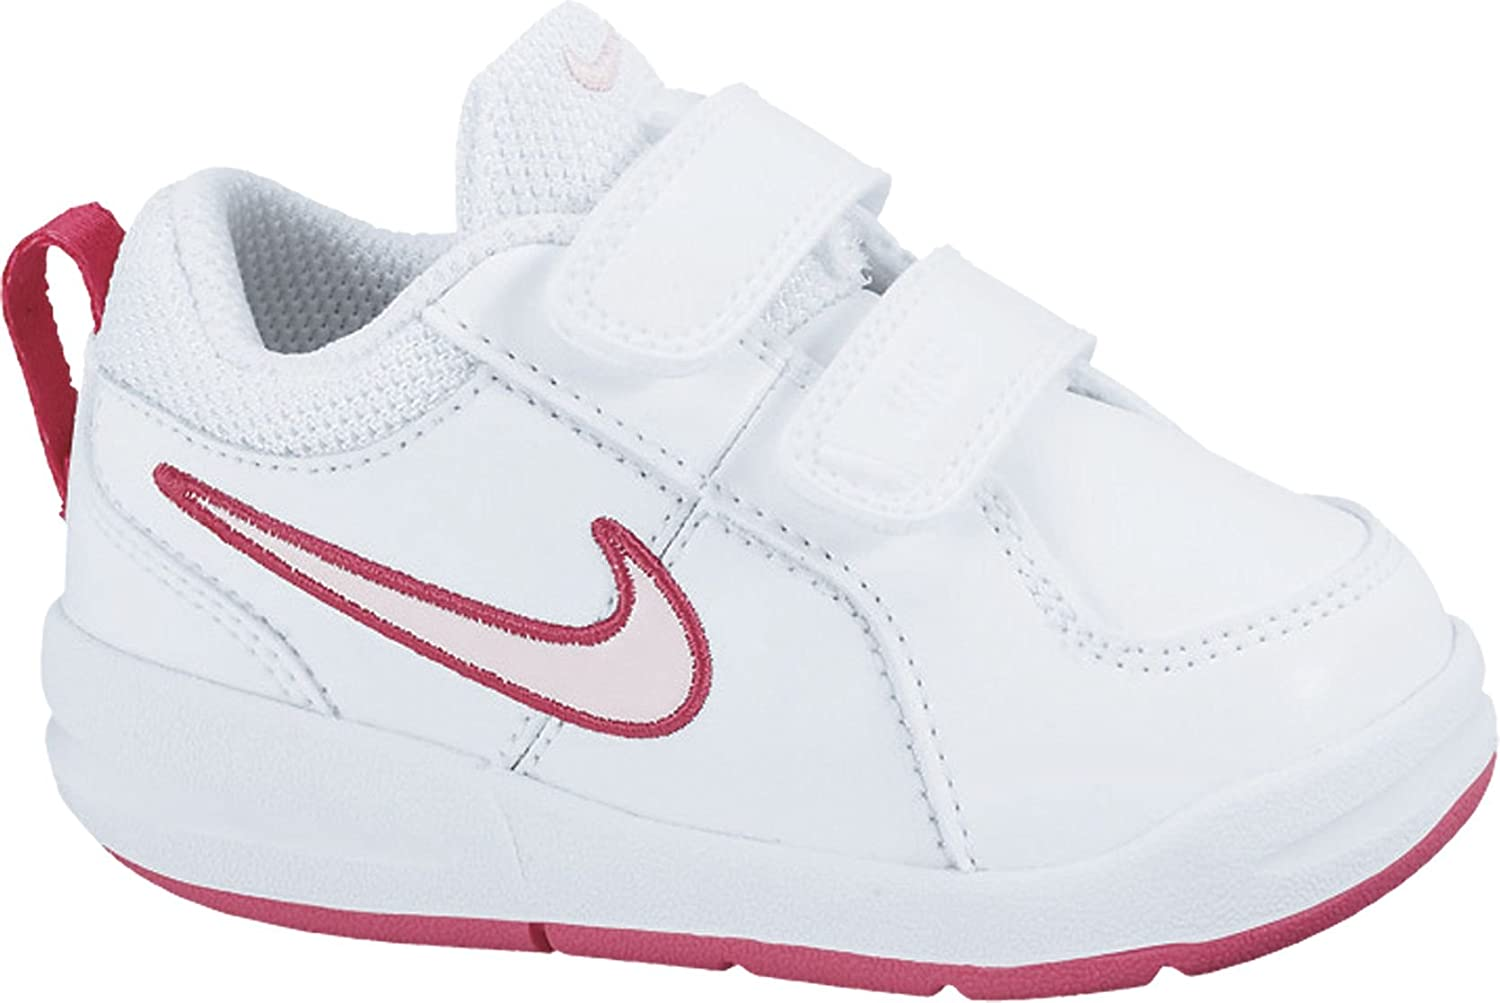 Nike - 454478 - Chaussures - Fille